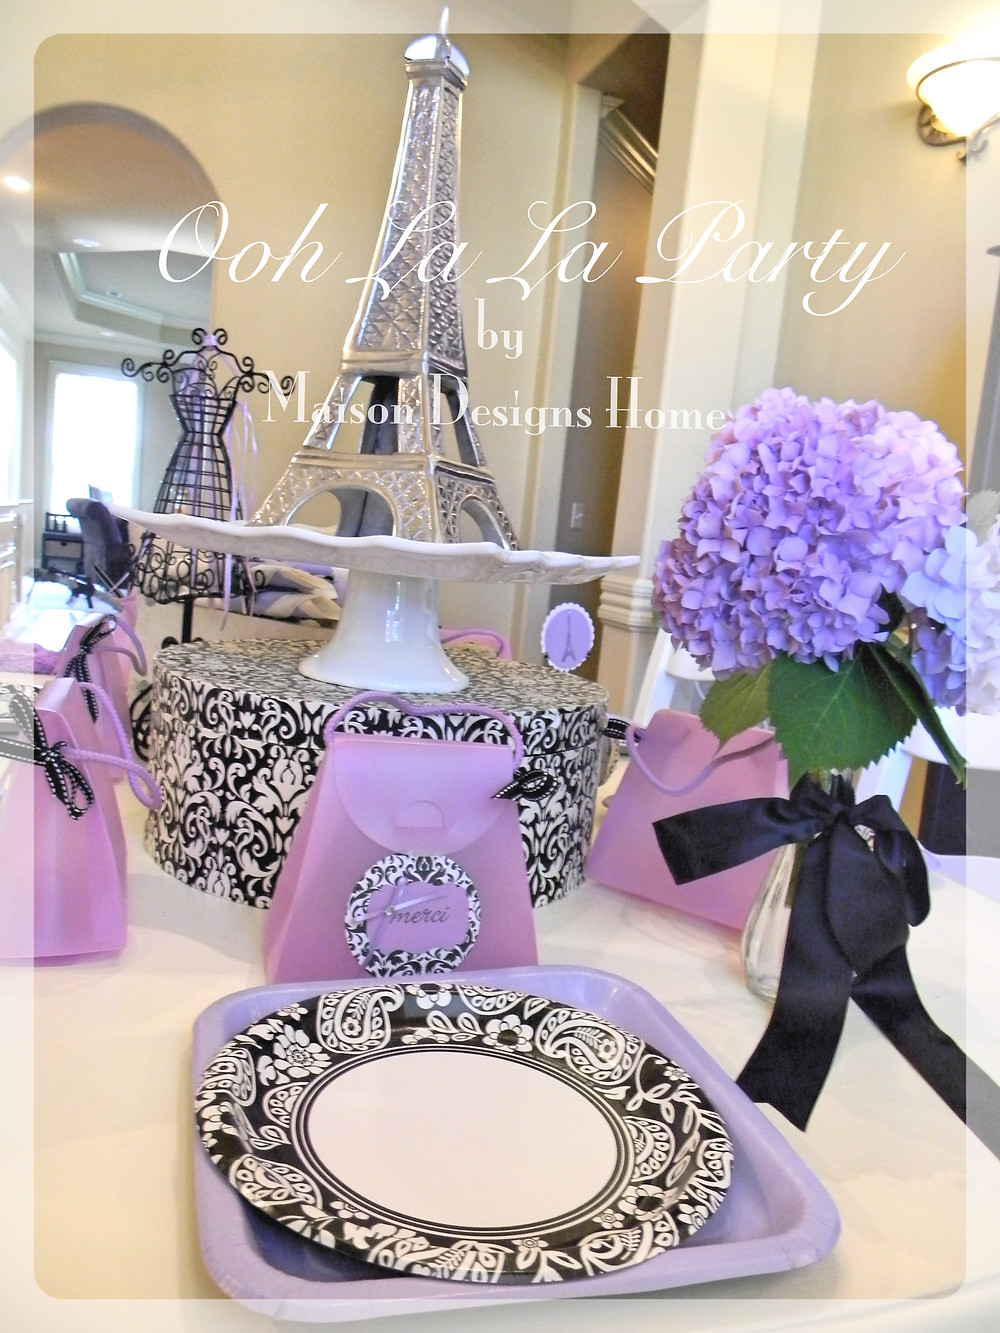 Ooh La La Party by Maison Designs